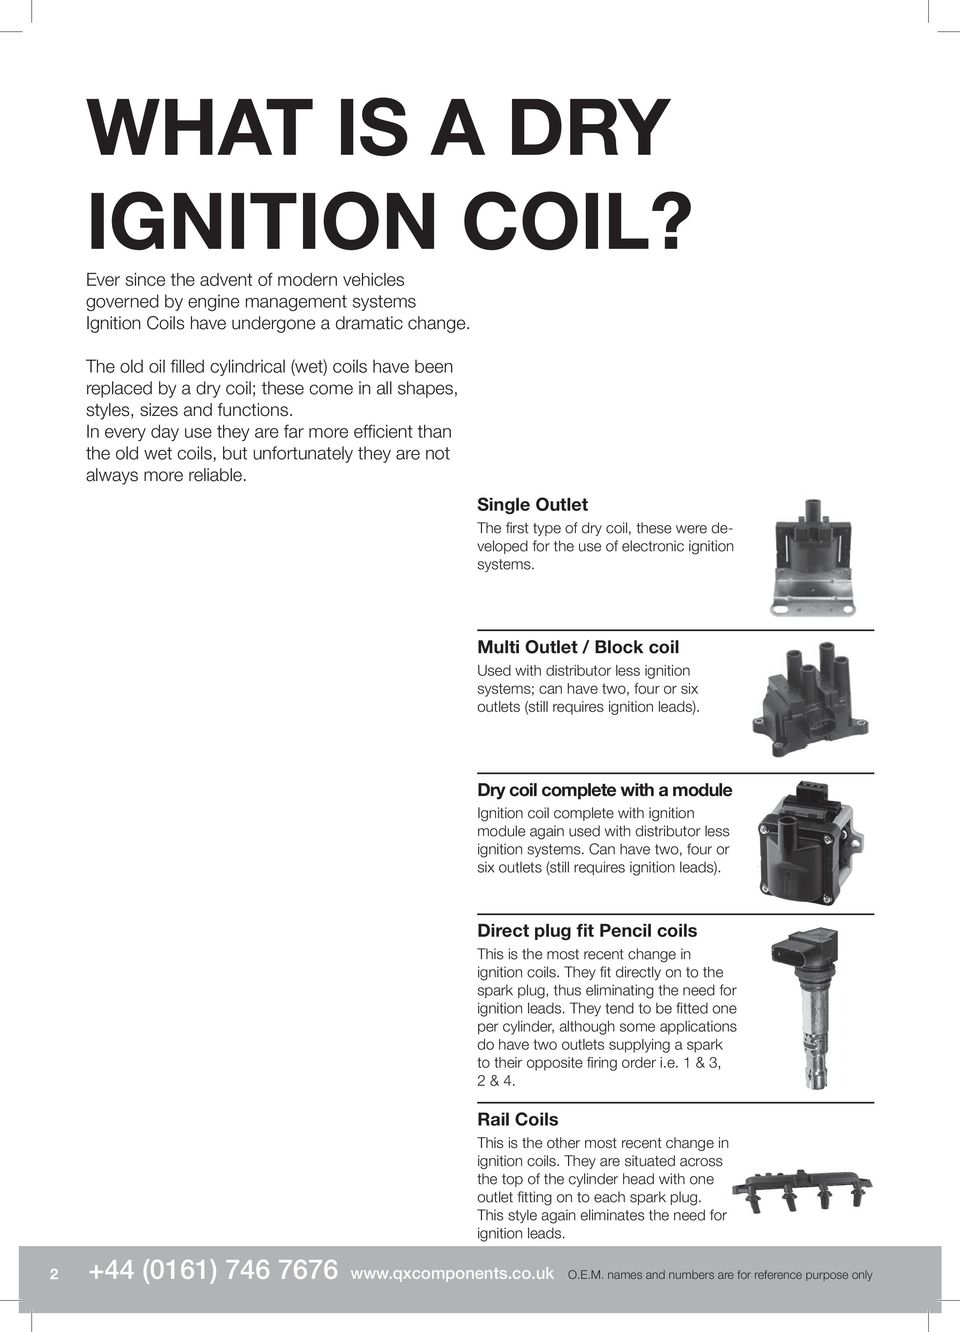 Ignition Coil Application Guide Pdf 1989 Fiat X 19 Fi Main Fuse Box Diagram In Every Day Use They Are Far More Effi Cient Than The Old Wet Coils